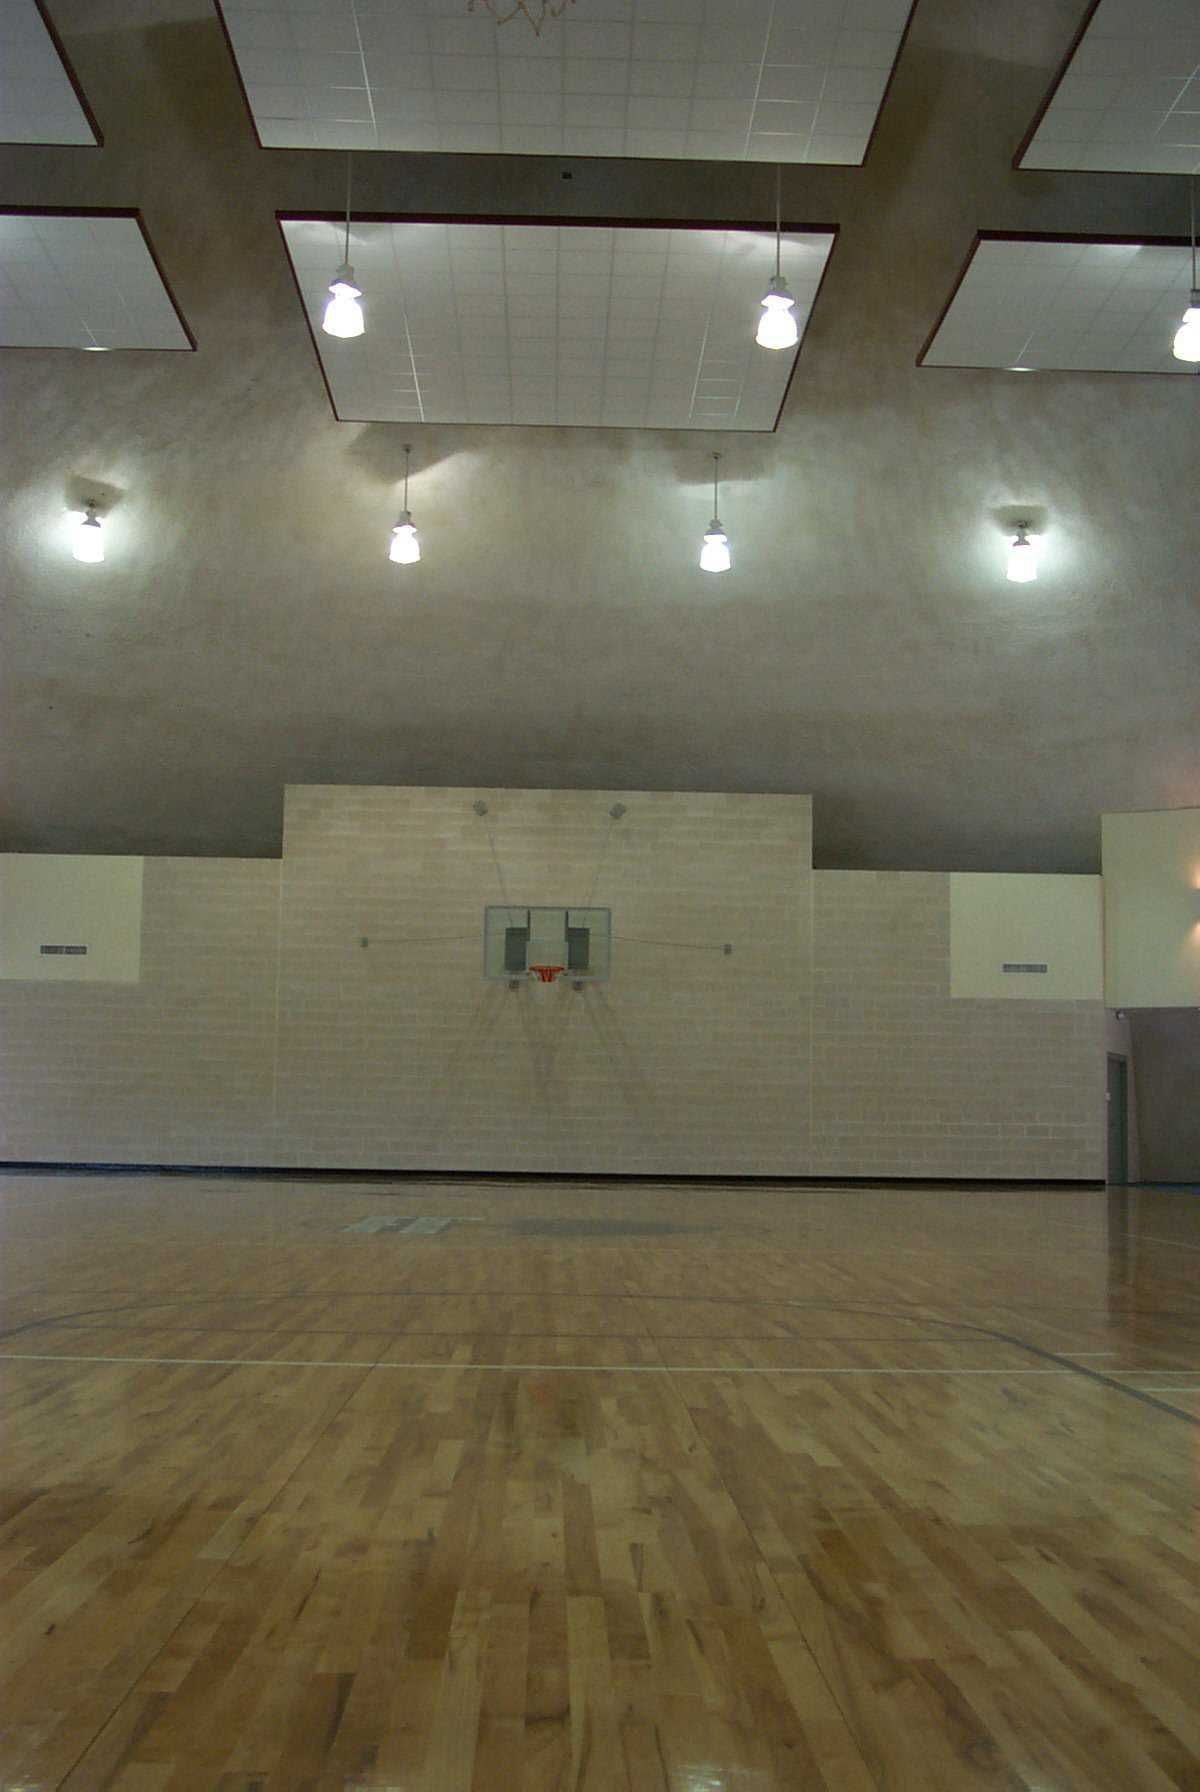 A Monolithic Dome Gym At Thousand Oaks Monolithic Dome